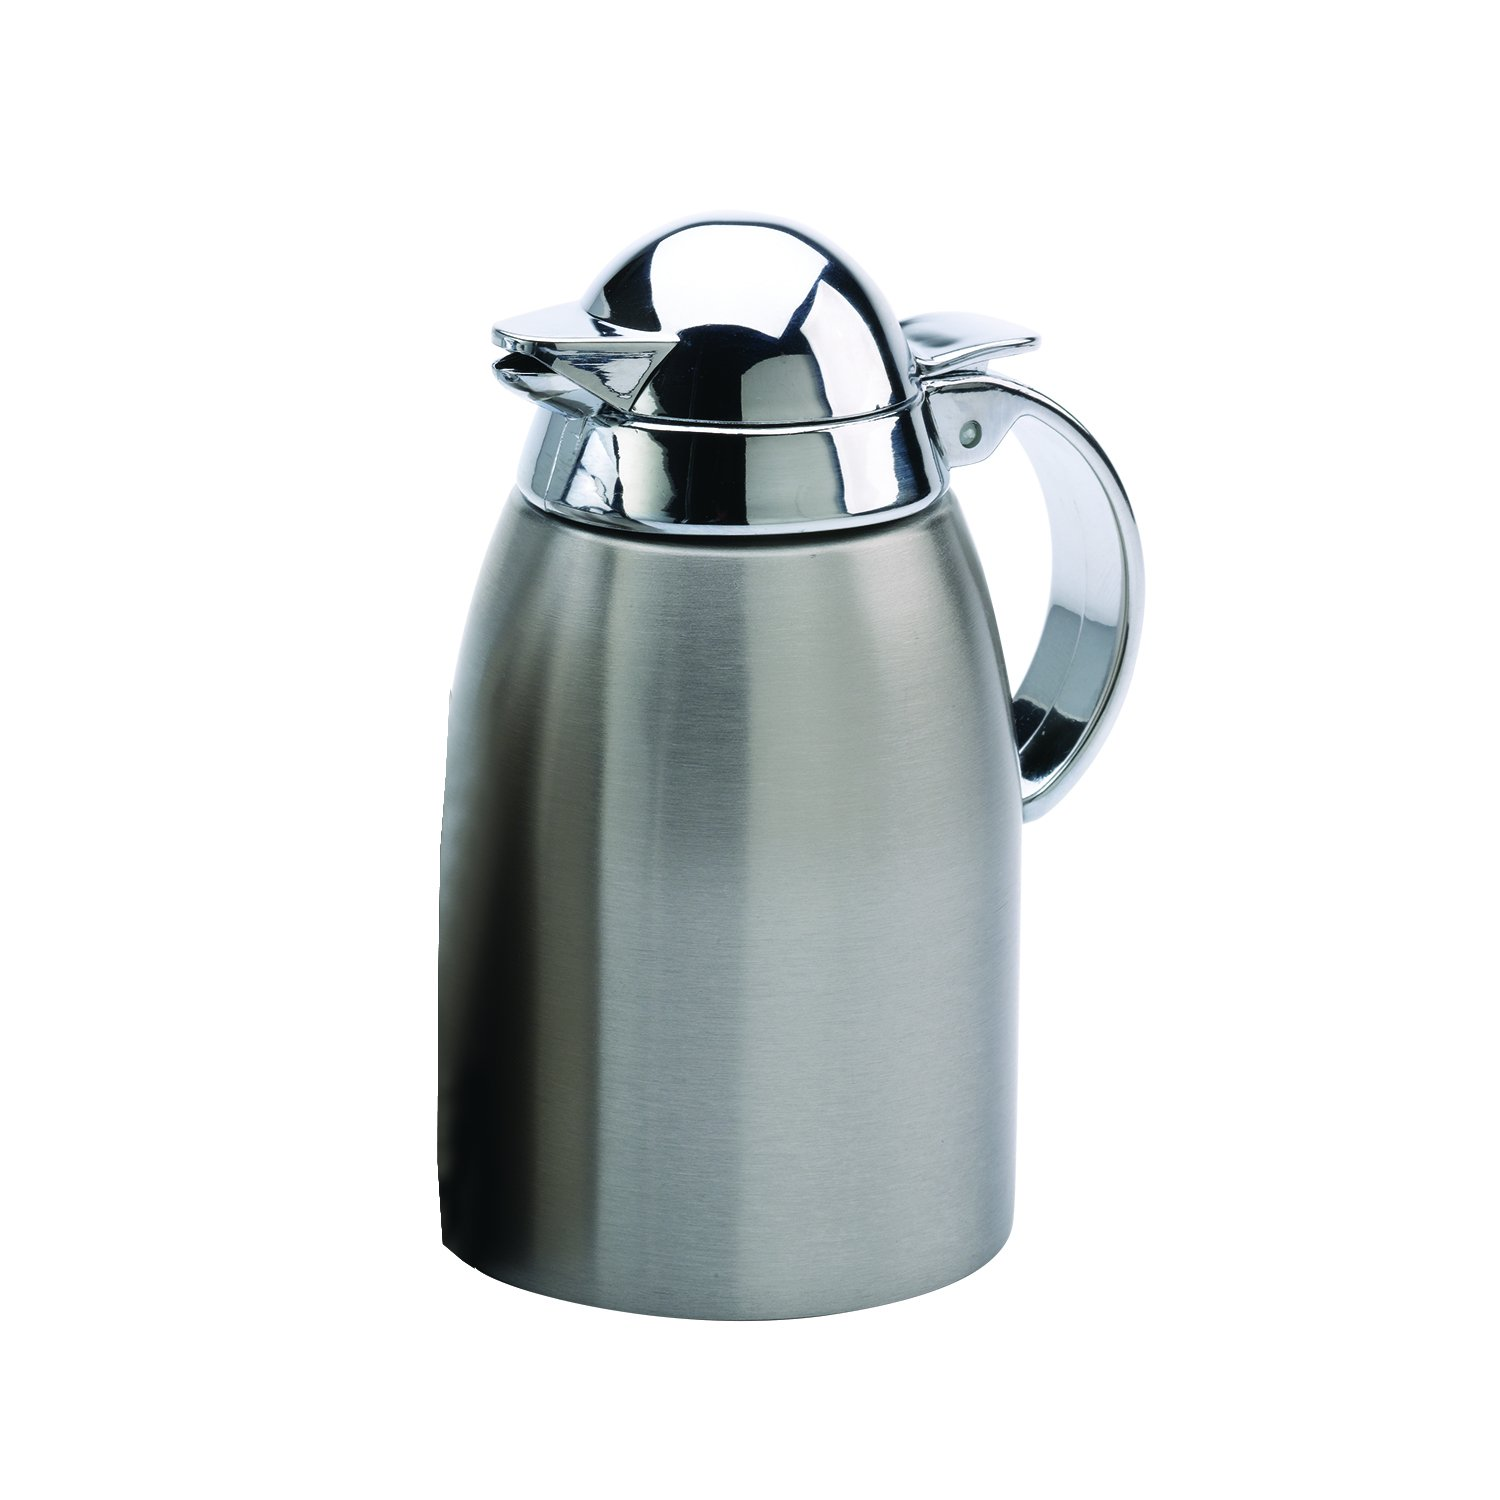 Service Ideas SC85 Condiment Creamer Server, Stainless Steel, 8 oz. by Service Ideas